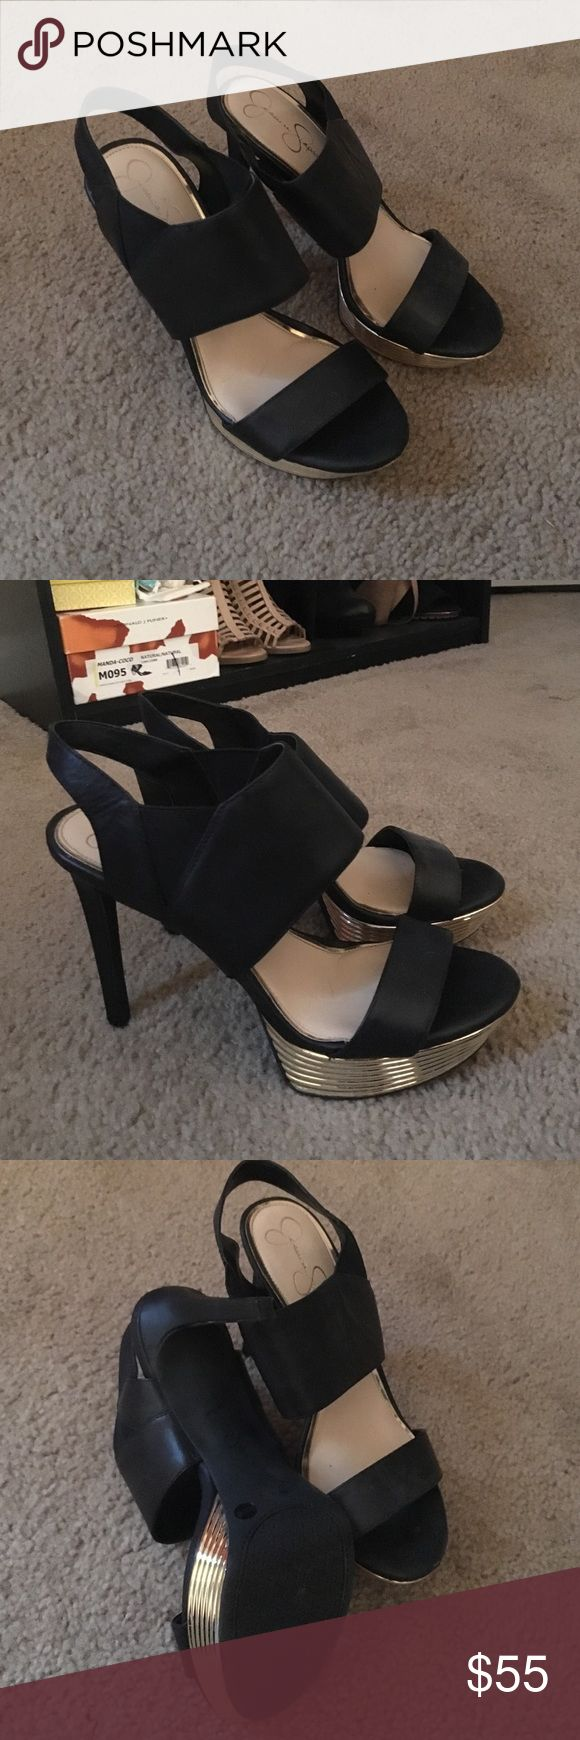 Never worn black and gold heels! Black and gold, high heel! Only selling because I can't wear super high heels anymore. Jessica Simpson Shoes Heels